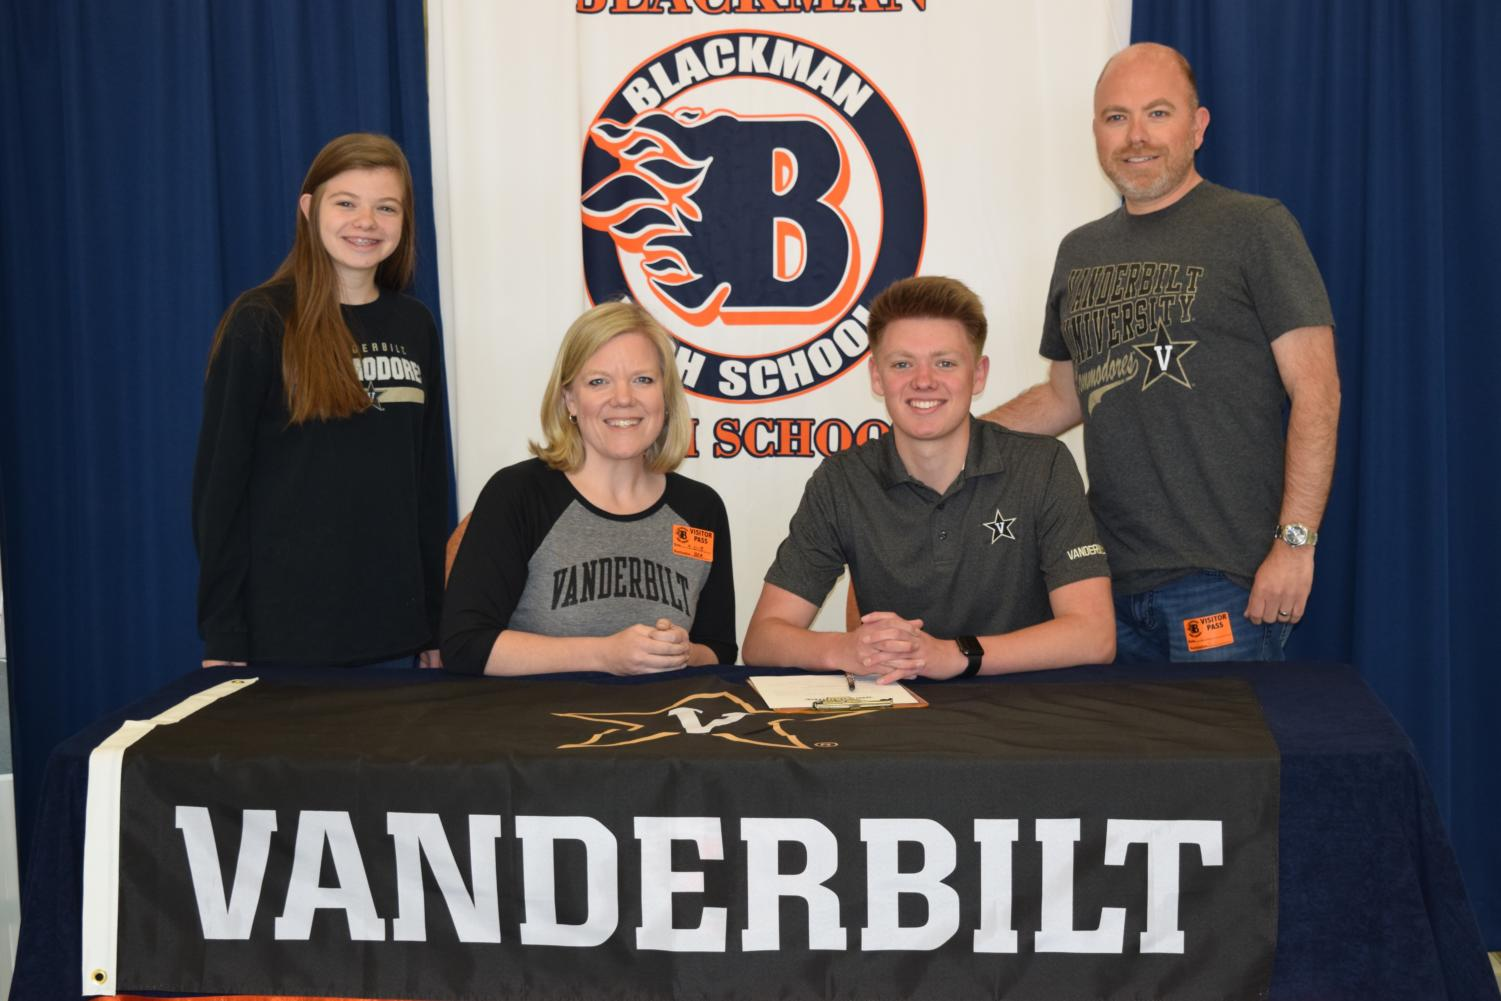 Griffin+Collins+will+attend+Vanderbilt+University+in+the+fall.